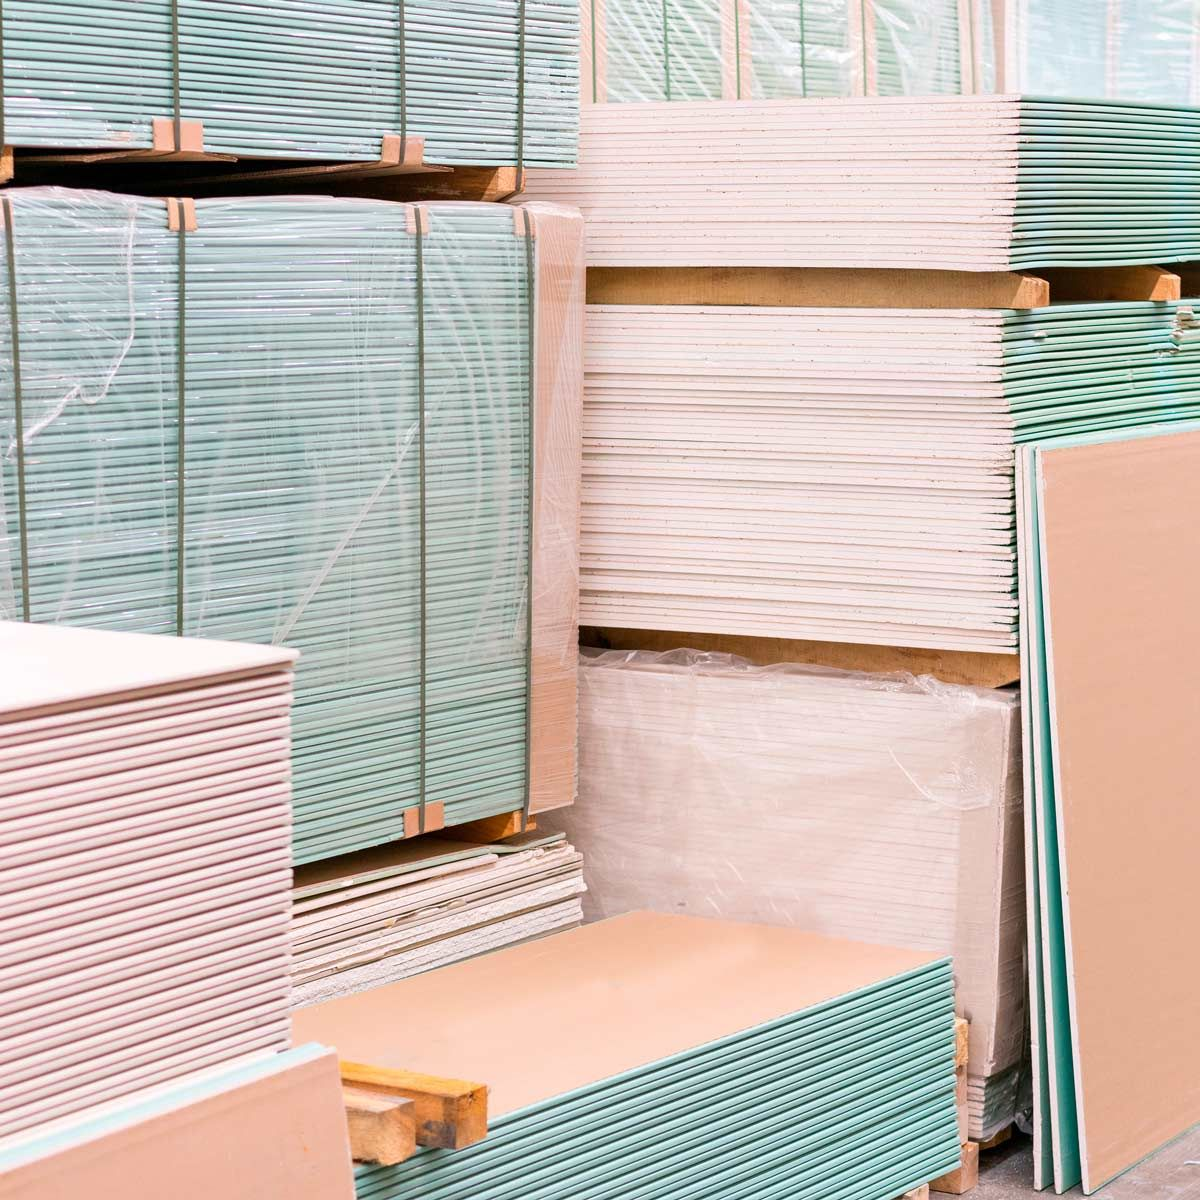 5 Types Of Drywall All Diyers Should Know About Diy Storage Shed Mold In Bathroom Drywall